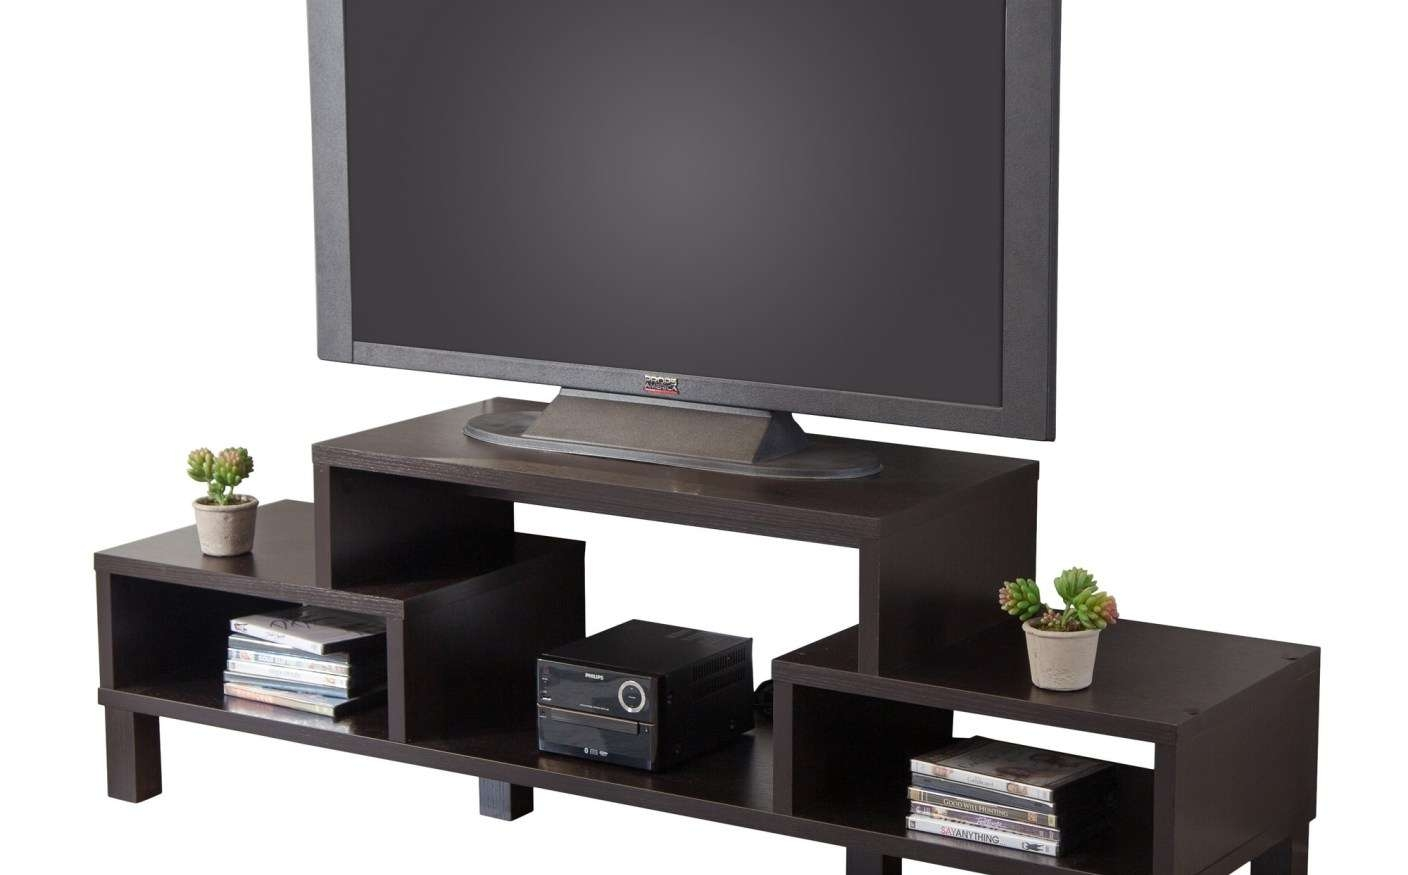 Tv : Ovid Tv Stands Black Terrifying Techlink Ovid Tv Stand Black Pertaining To Ovid Tv Stands Black (View 13 of 20)